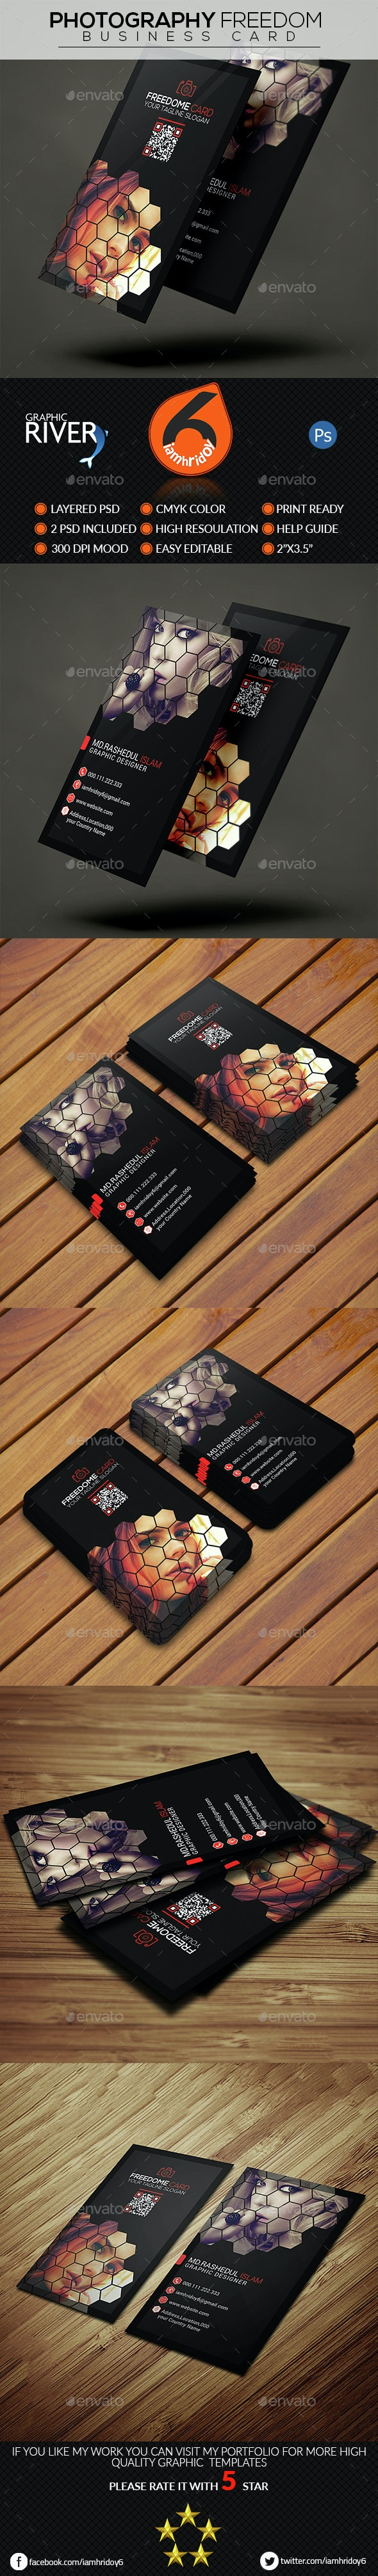 Photography Freedom Business Card - Business Cards Print Templates